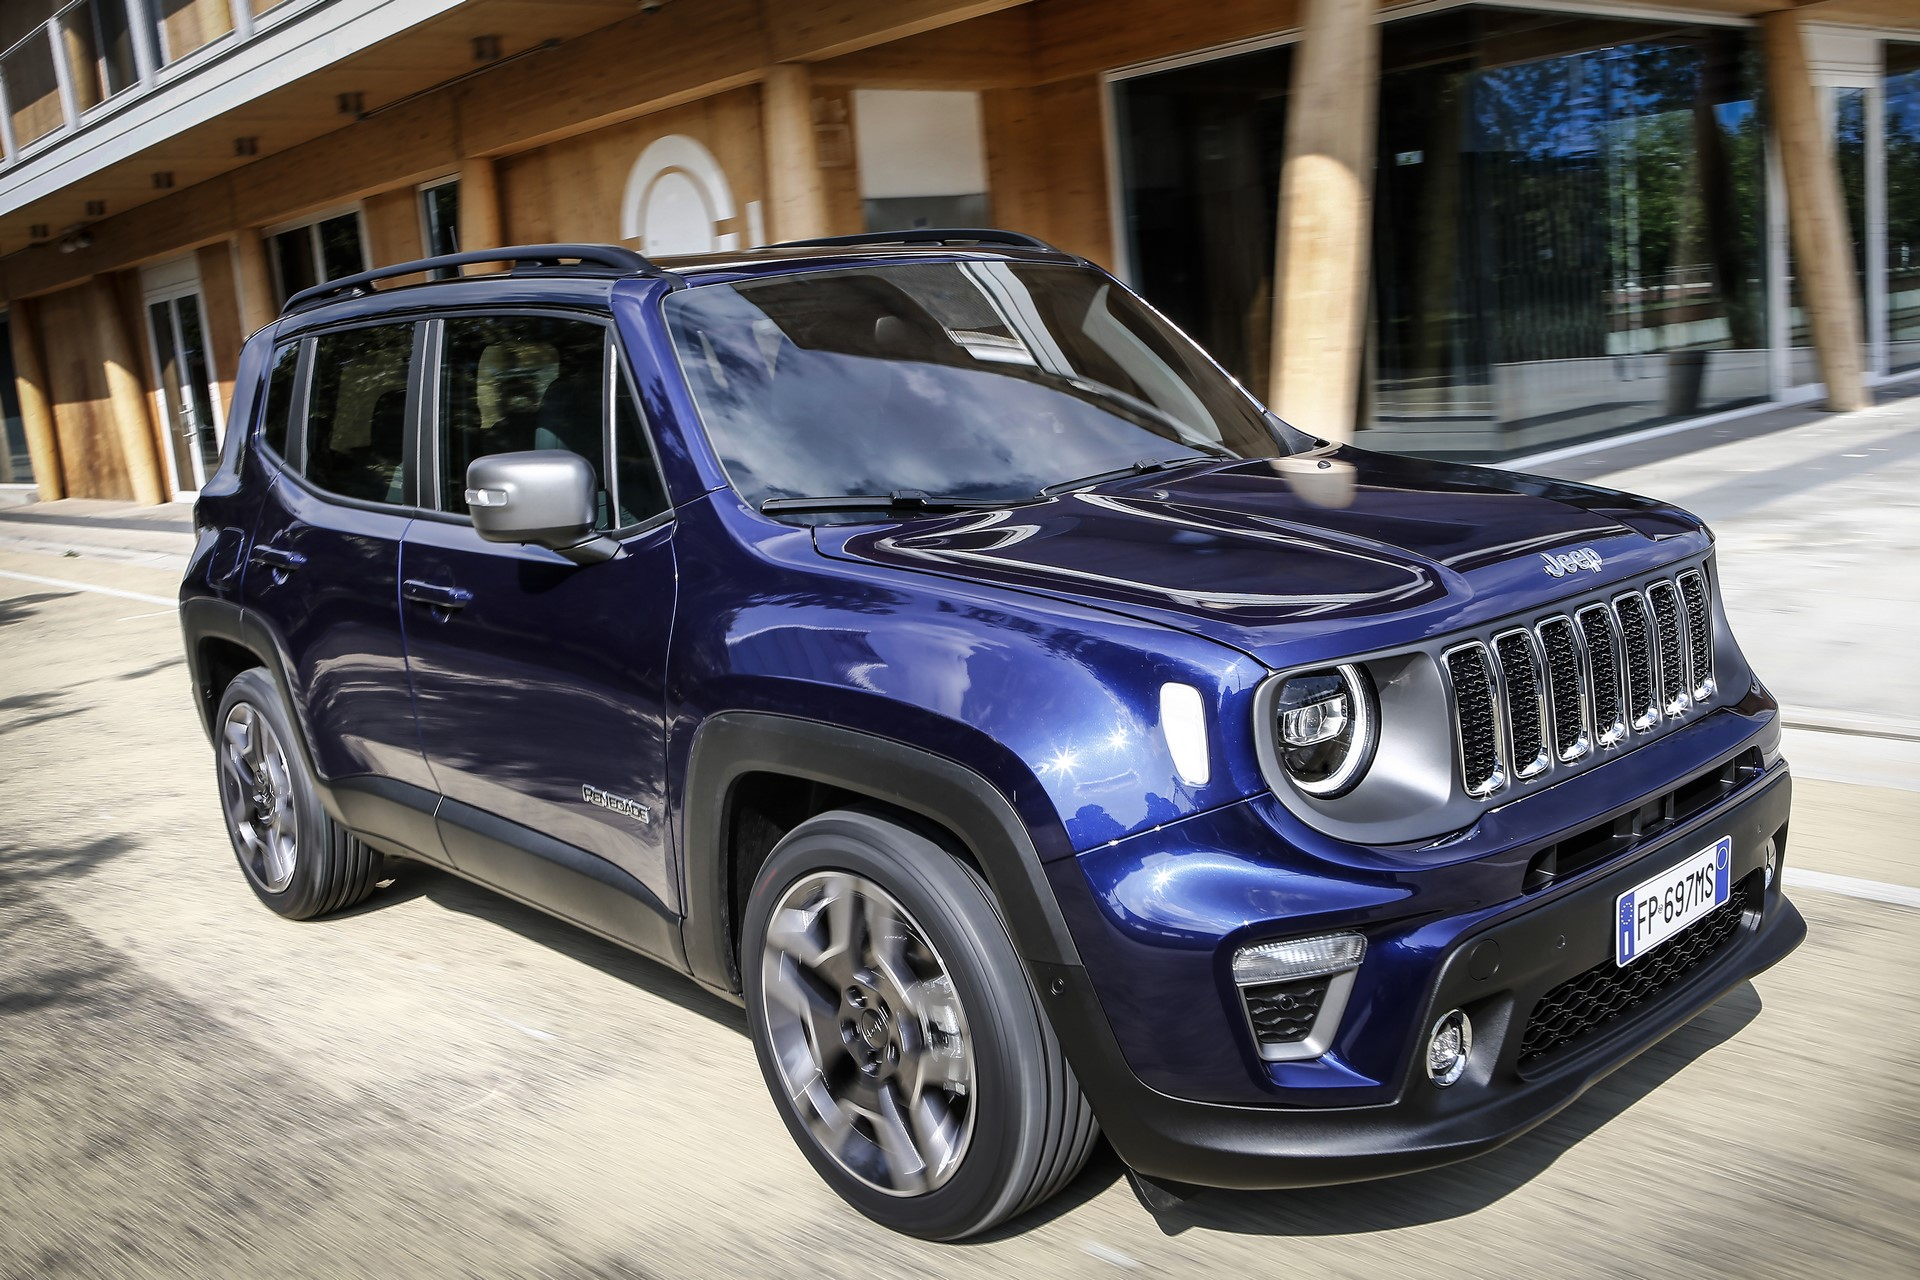 Jeep Renegade facelift 2019 (13)